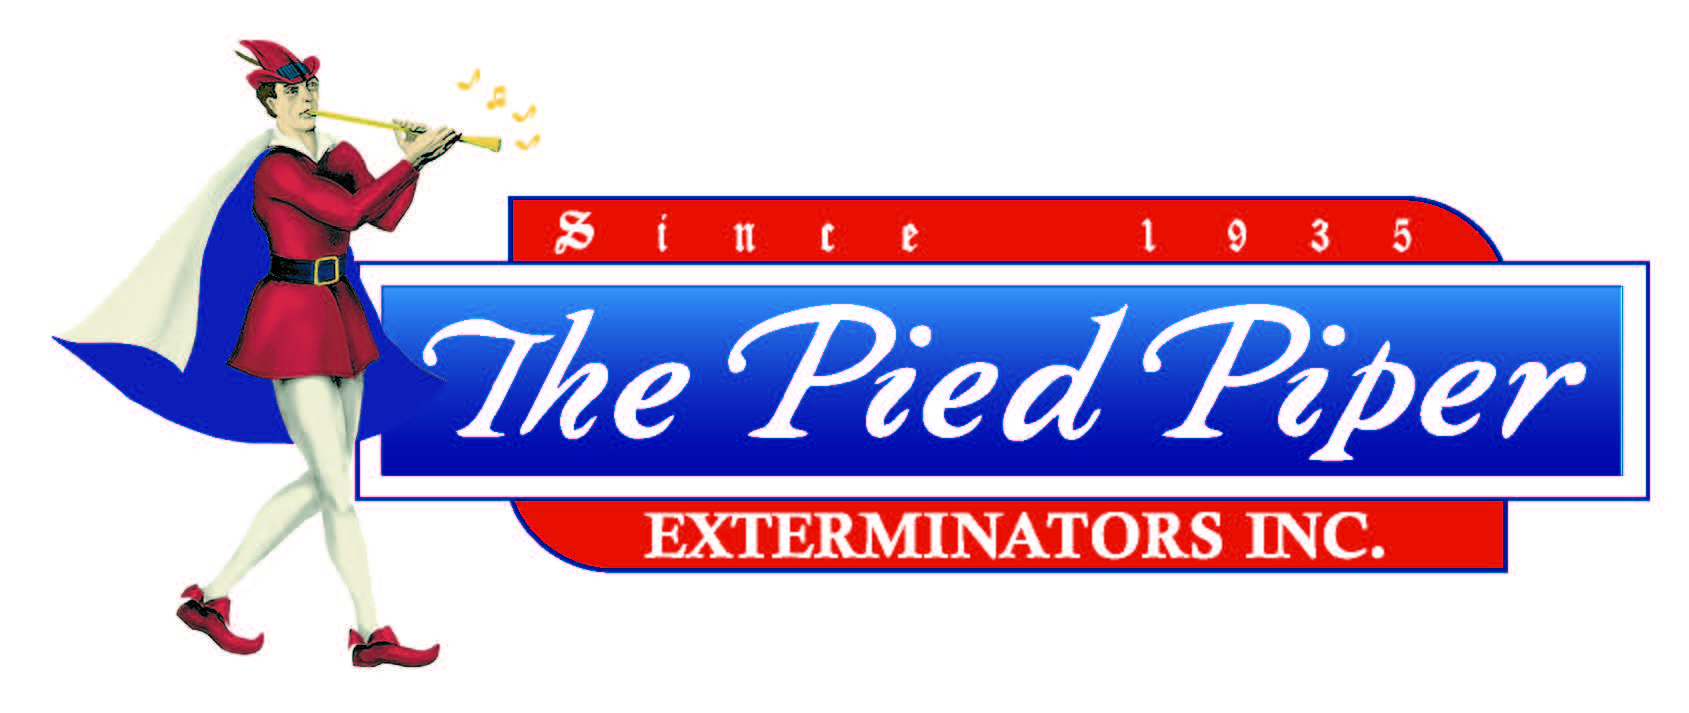 Thank you to The Pied Piper Exterminators